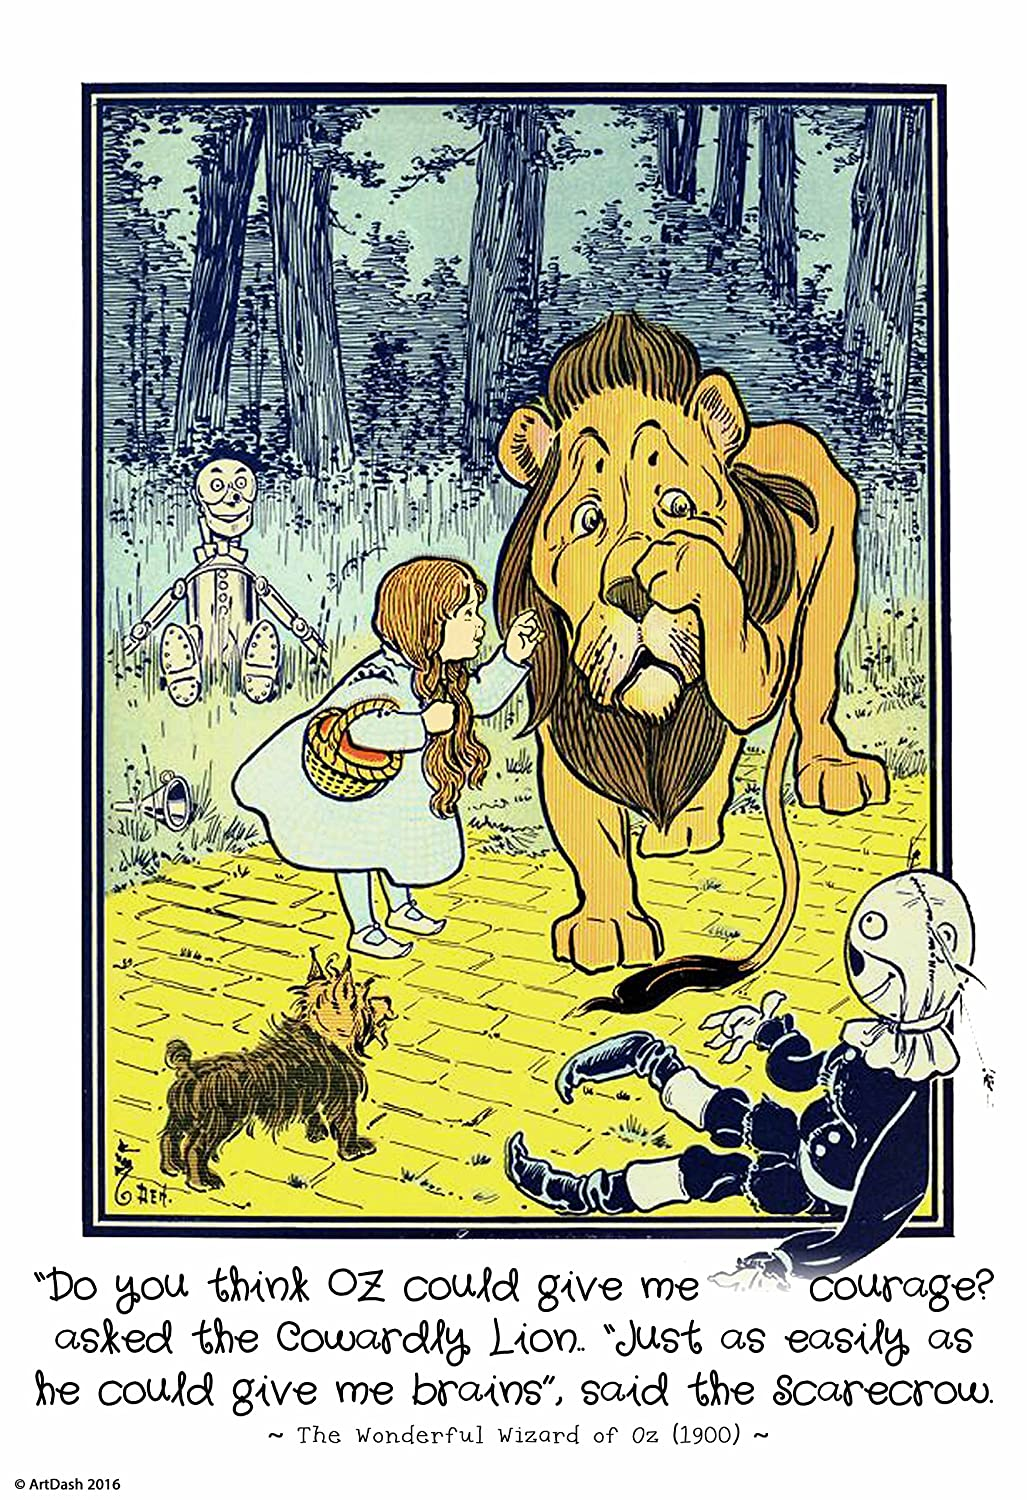 Amazon.com: The Wonderful Wizard of Oz Illustrations: Small 13\